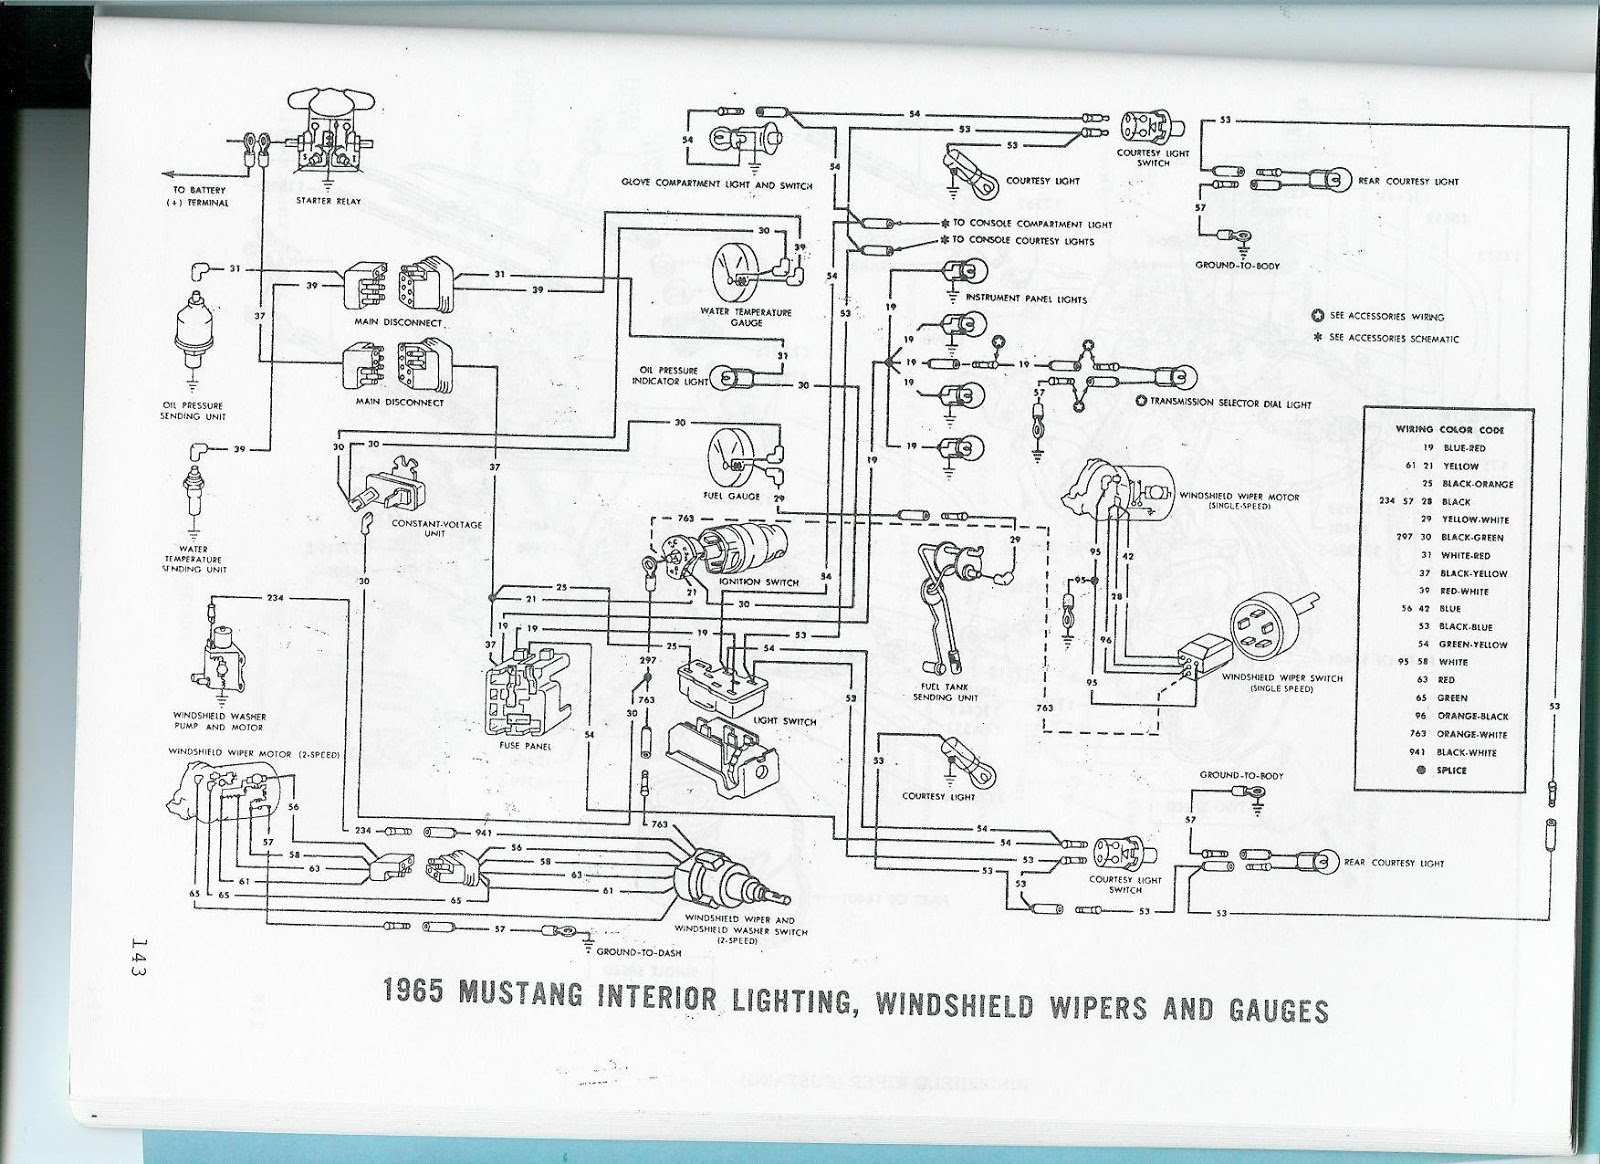 1970 Mustang Headlight Wiring Diagram Opinions About 65 Gto Turn Signal The Care And Feeding Of Ponies 1965 Diagrams 1969